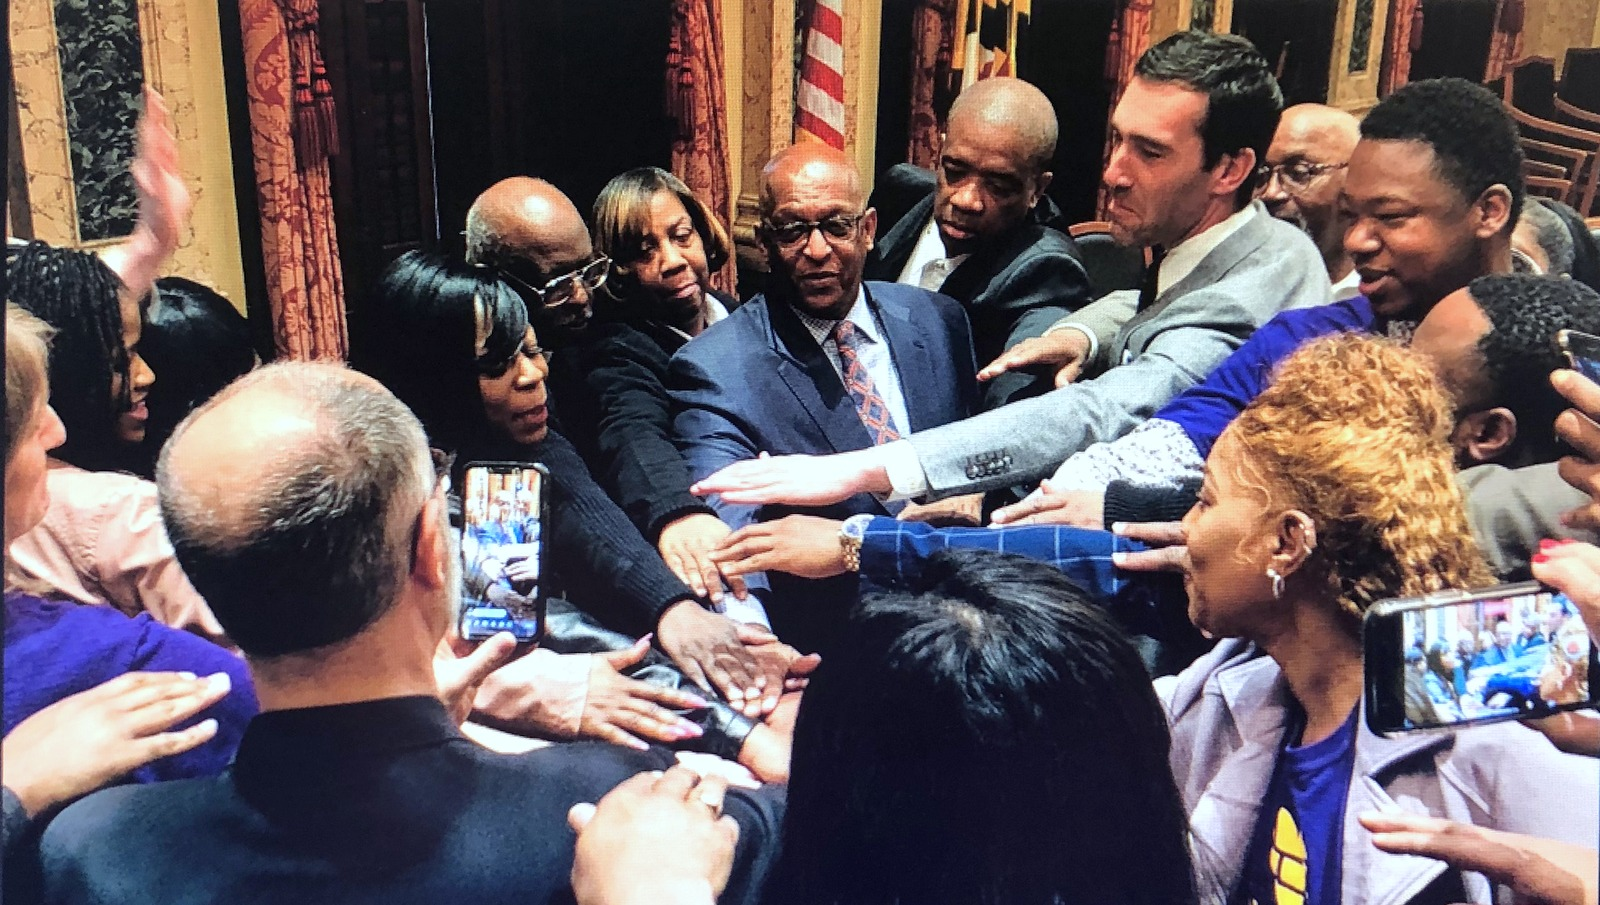 At a March 11 press event, Mayor Young, Councilman Zeke Cohen and others touch hands to celebrate the launch of the Trauma Informed Care Task Force. (@mayorbcyoung)